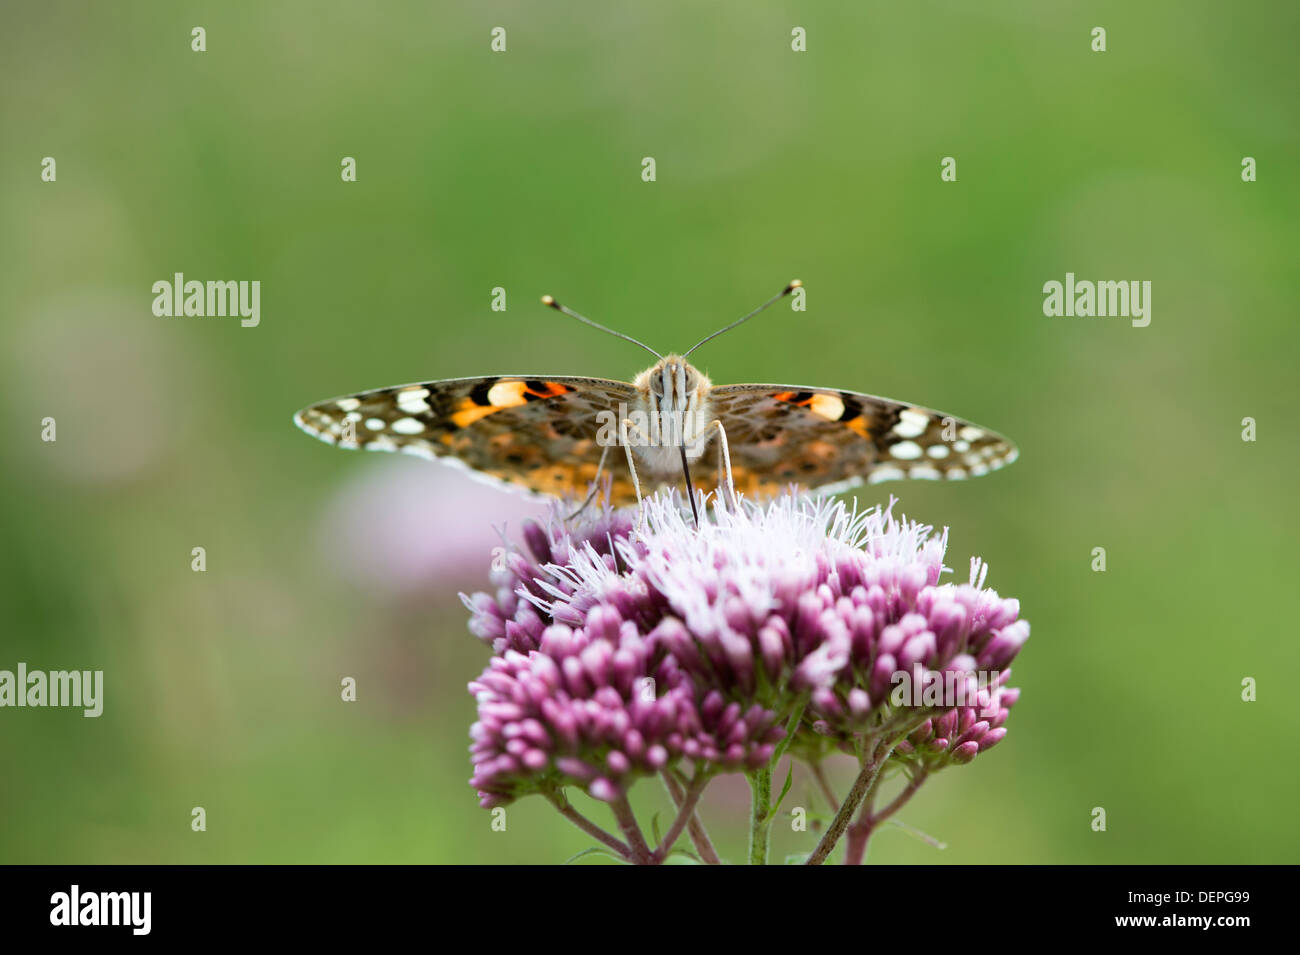 Painted lady butterfly (Cynthia cardui) - UK Stock Photo